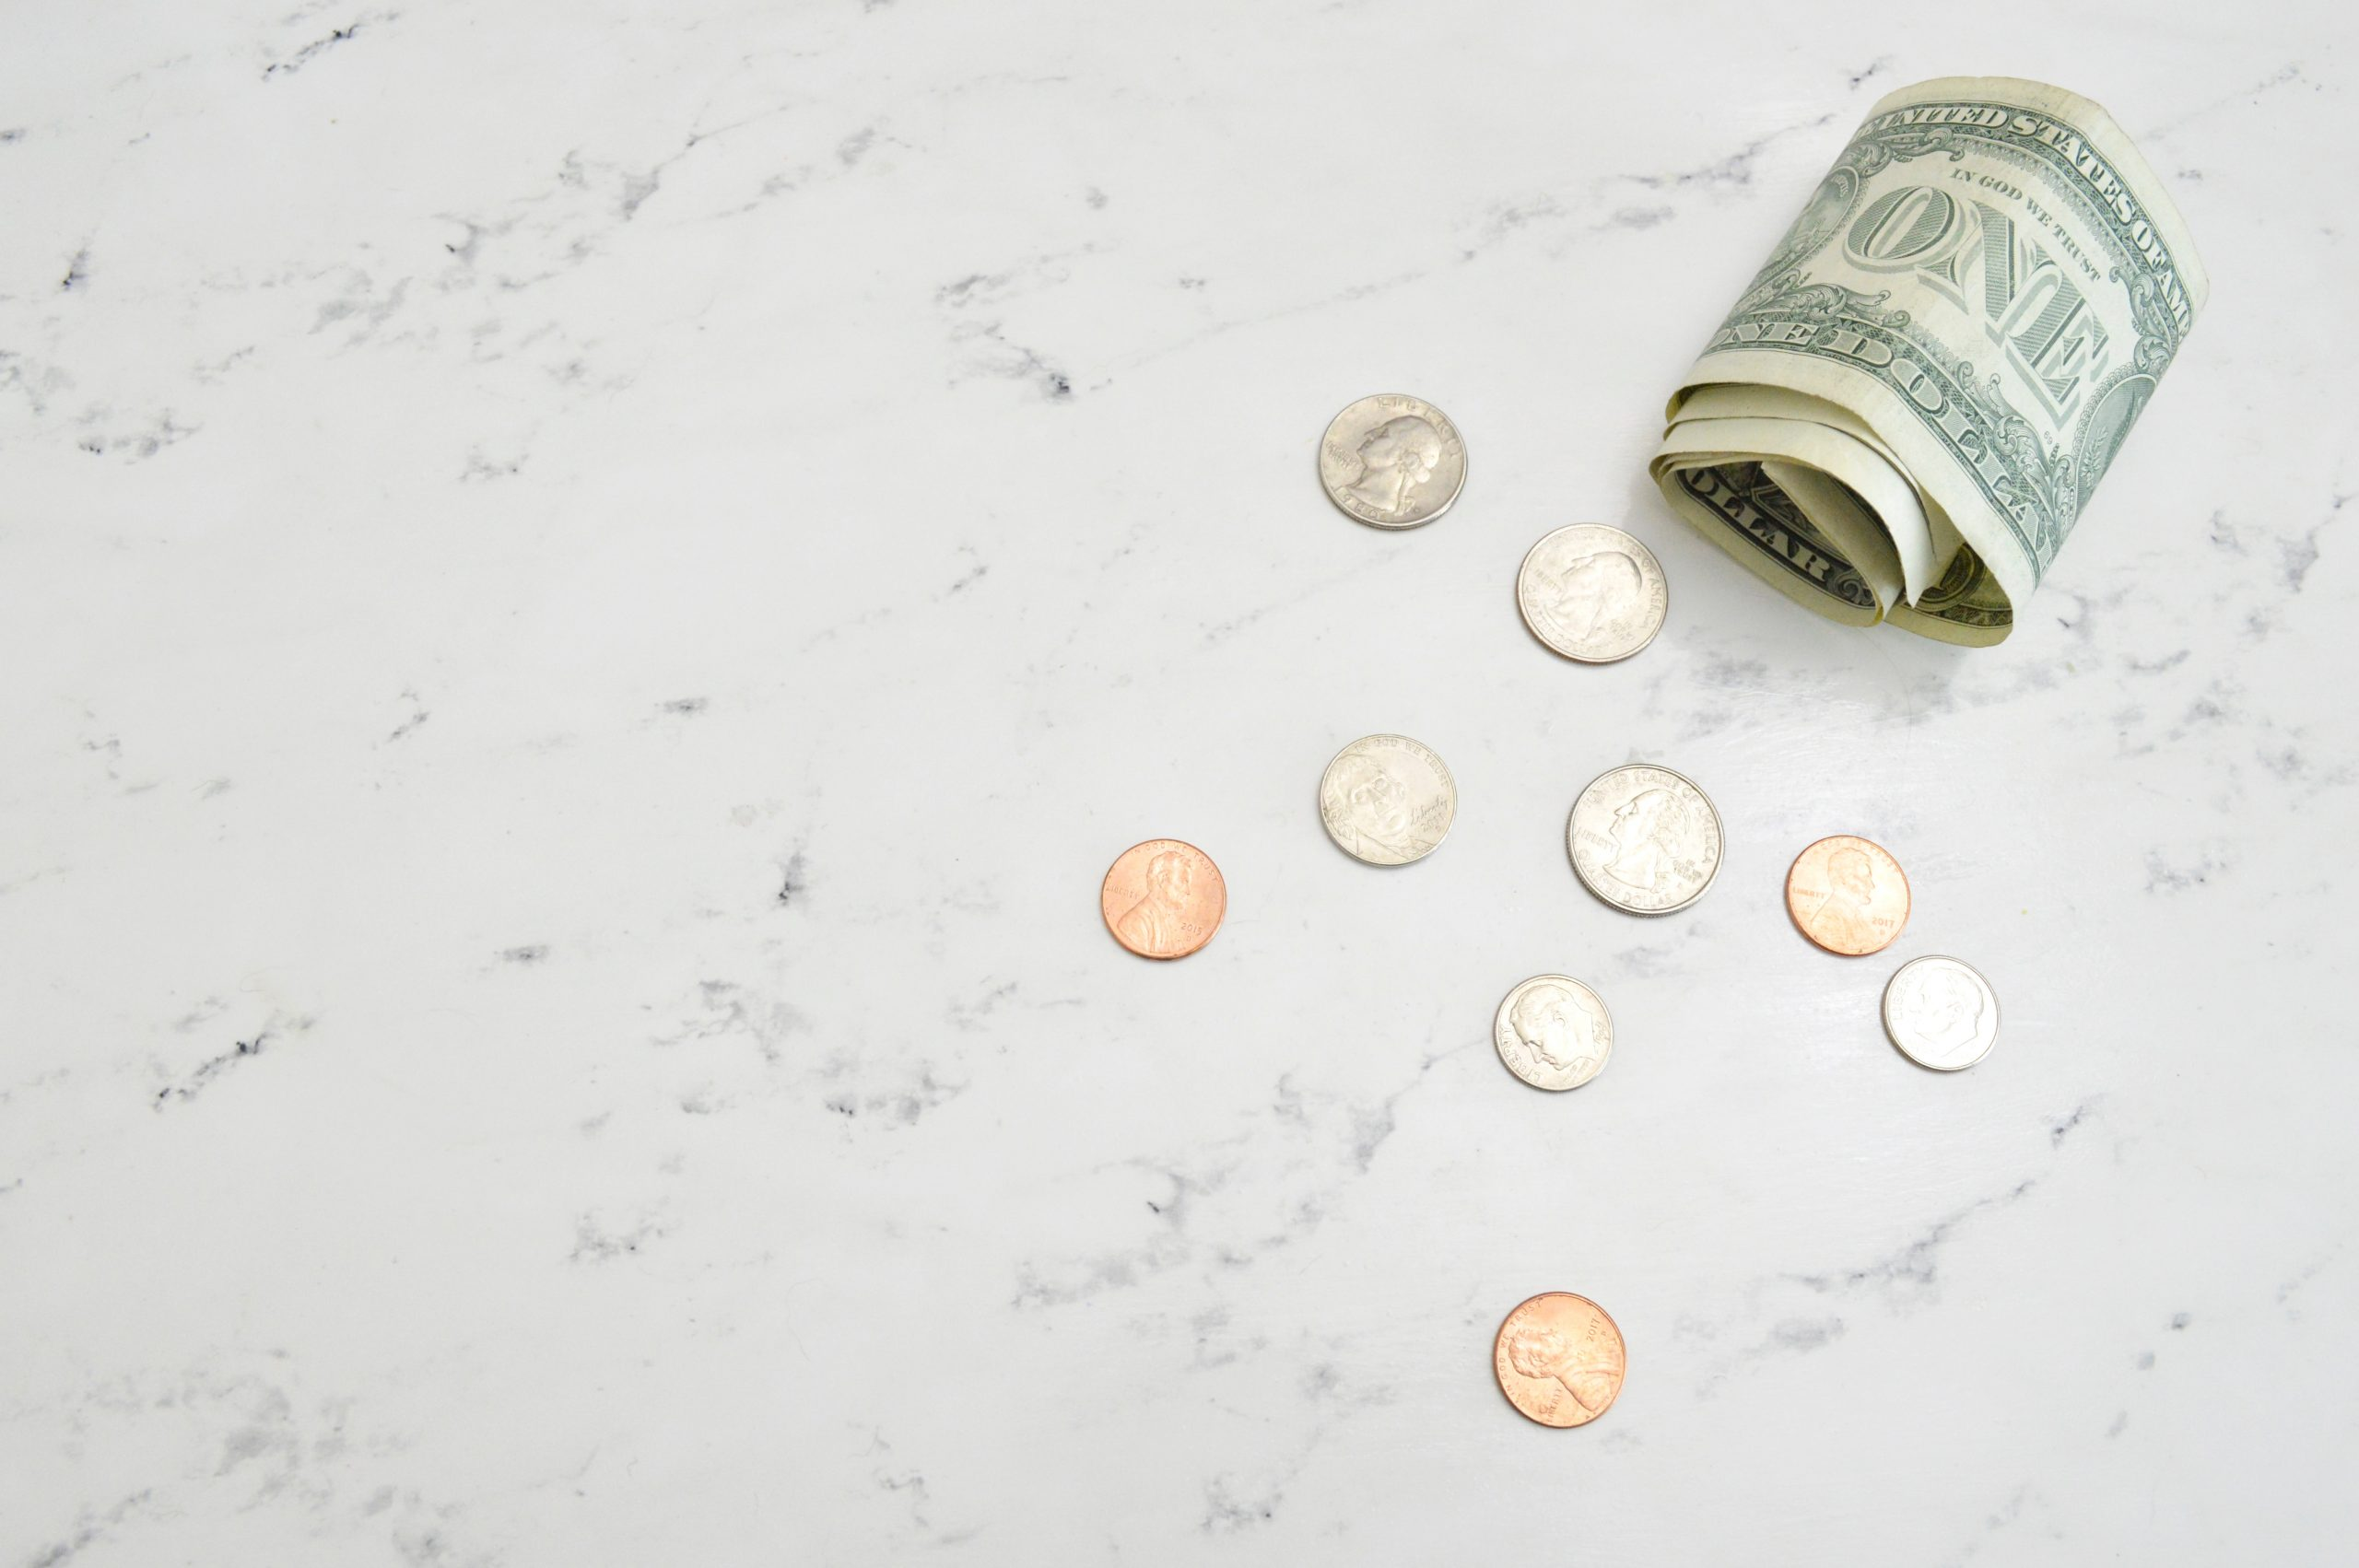 15 Common Small Business Fees and Startup Costs You Need To Know